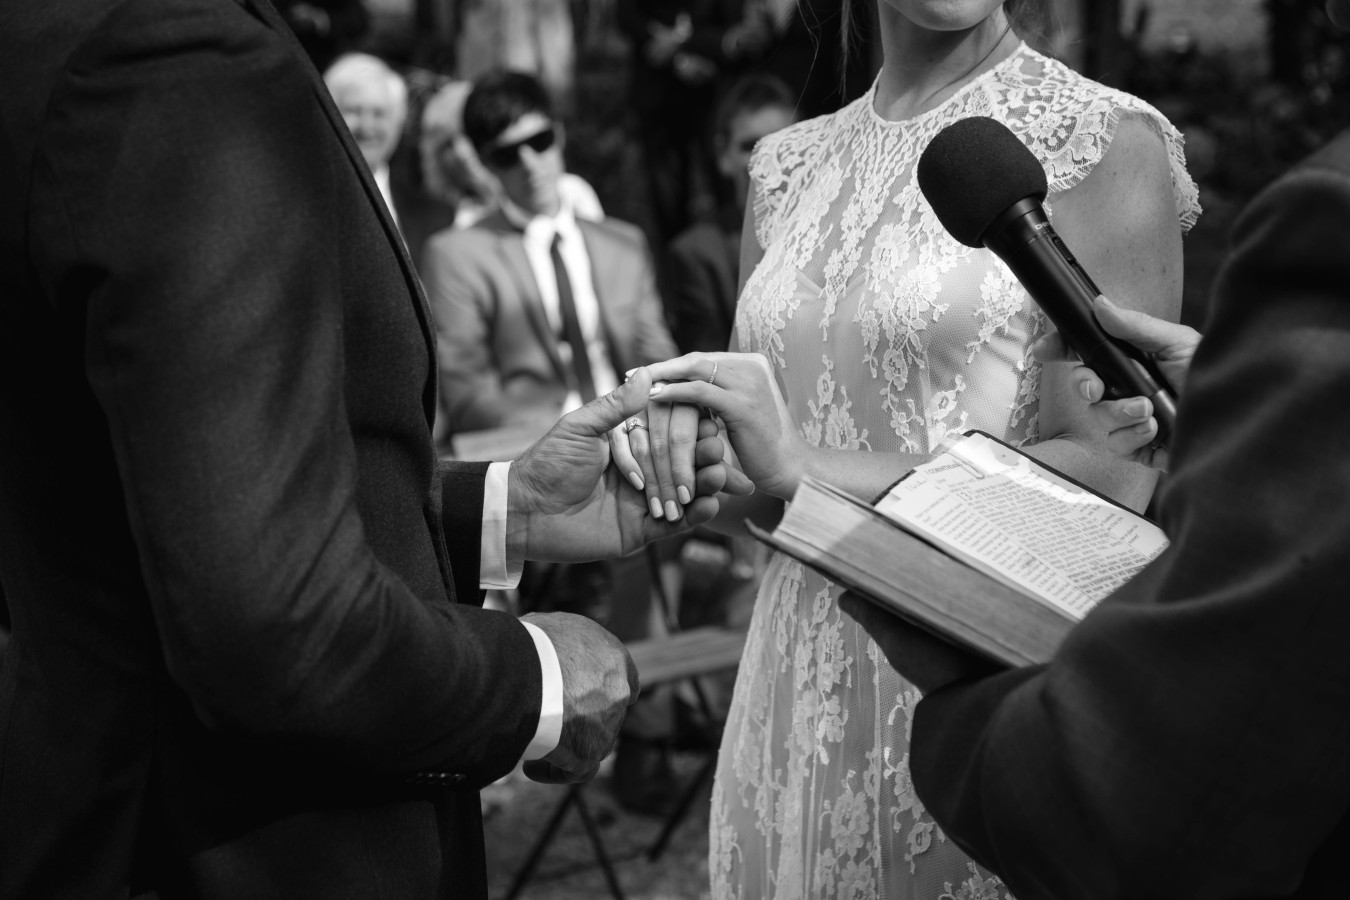 Holding Hands after exchanging rings b + w